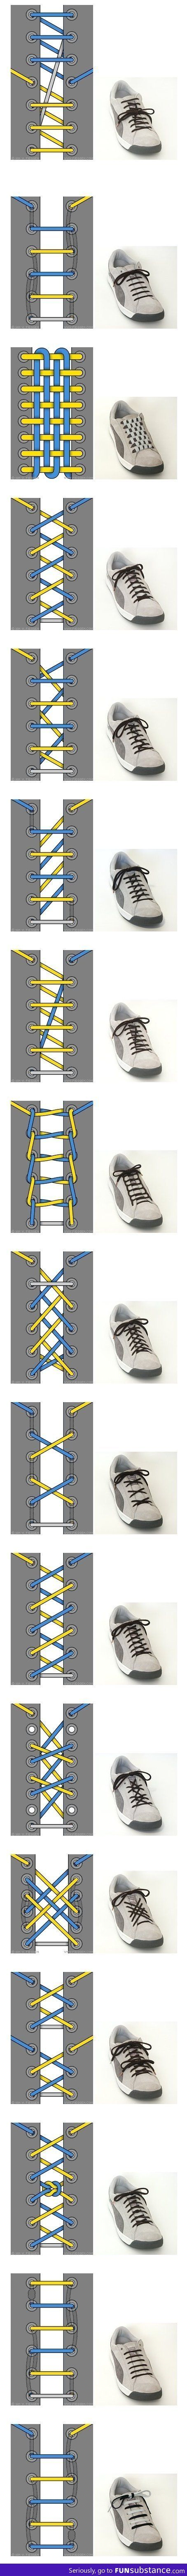 Different ways to tie your shoes